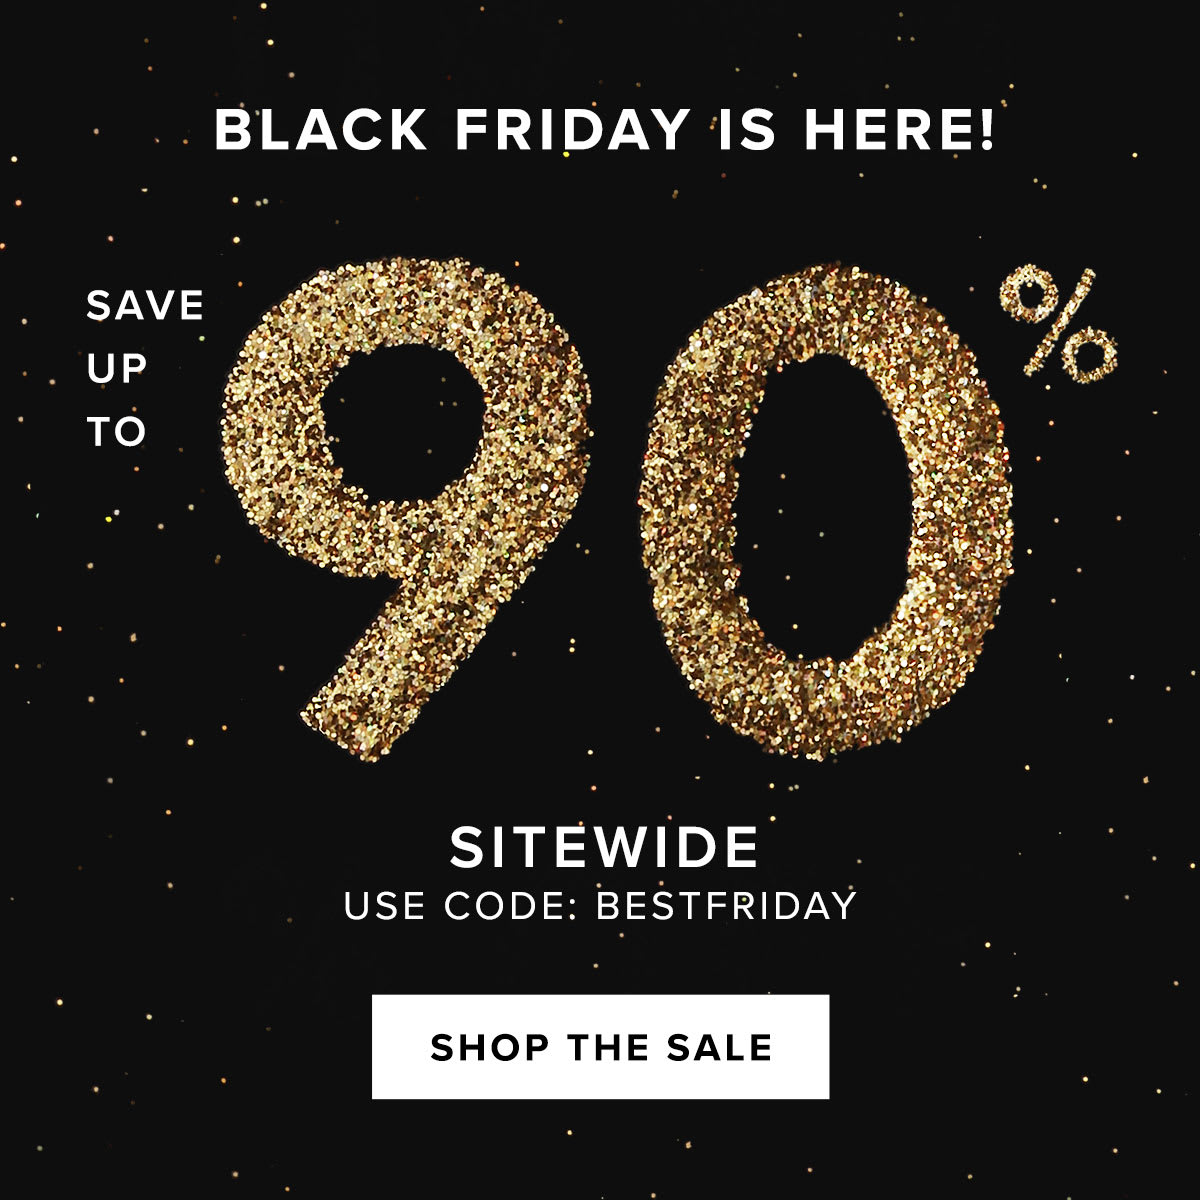 Black Friday is here! Up to 90% off SITEWIDE + free shipping on all orders. Use code BESTFRIDAY